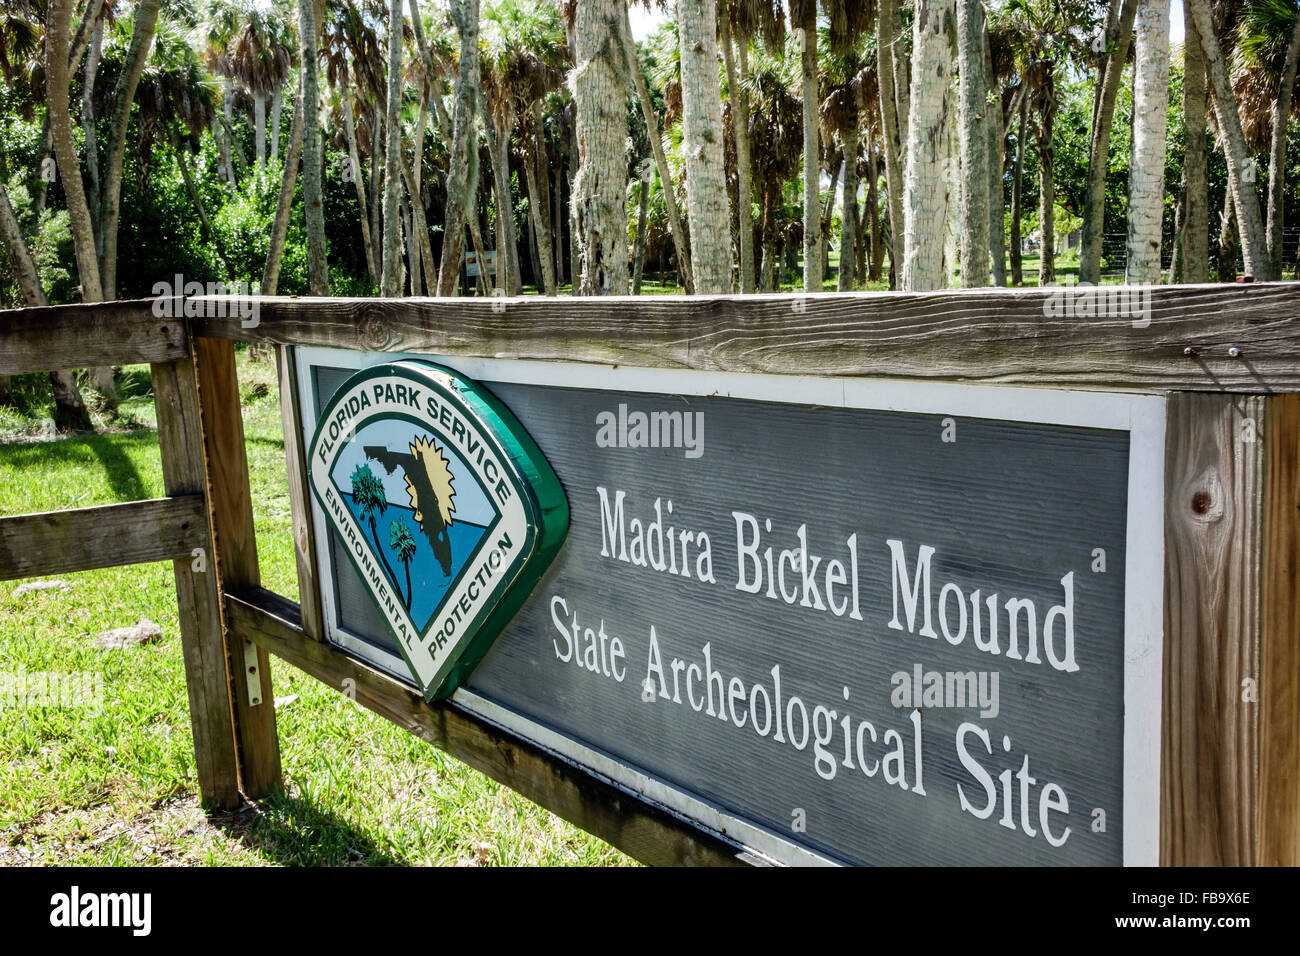 Florida Terra Ceia Madira Bickel Mound State Archeological Site Indian Native American sign entrance - Stock Image